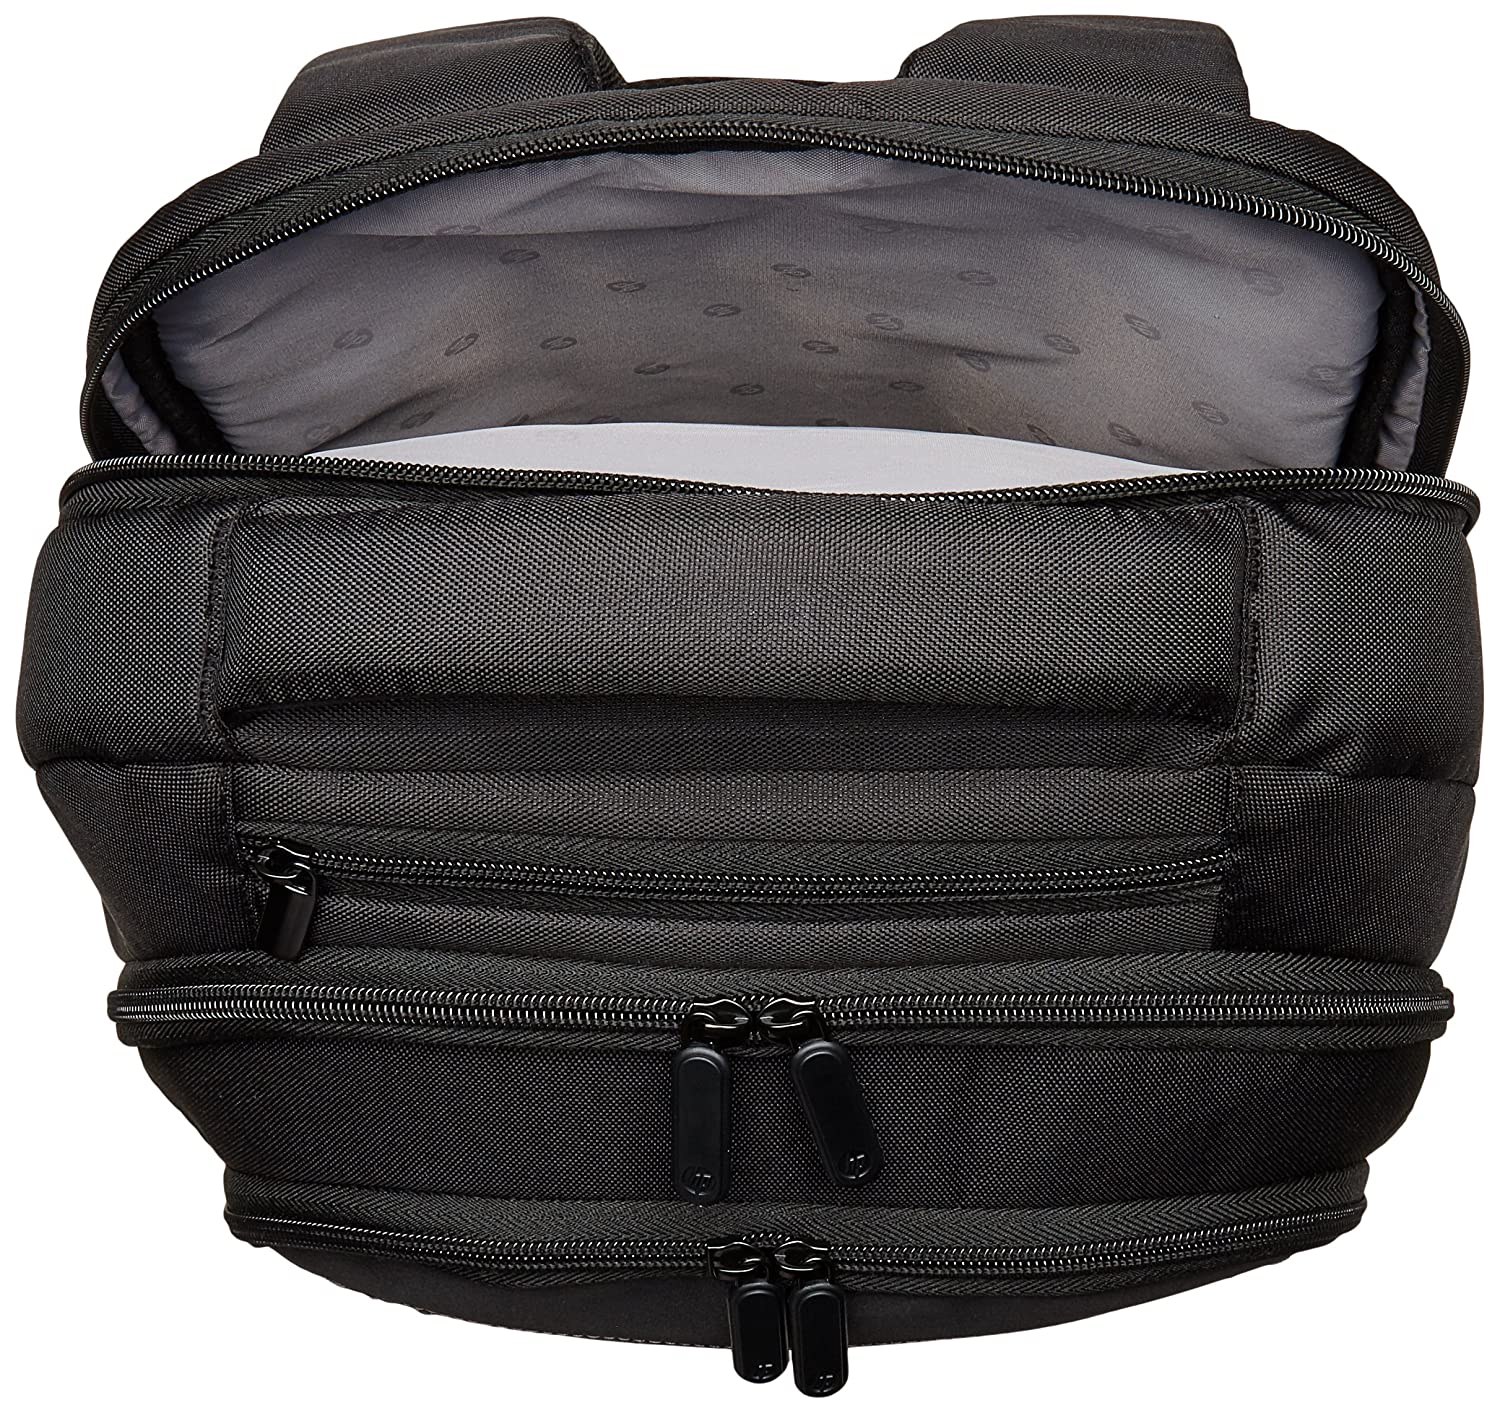 f26a3d83b871 HP Business H5M90AA Backpack for 17.3-inch Laptop - Buy HP Business H5M90AA  Backpack for 17.3-inch Laptop Online at Low Price in India - Amazon.in